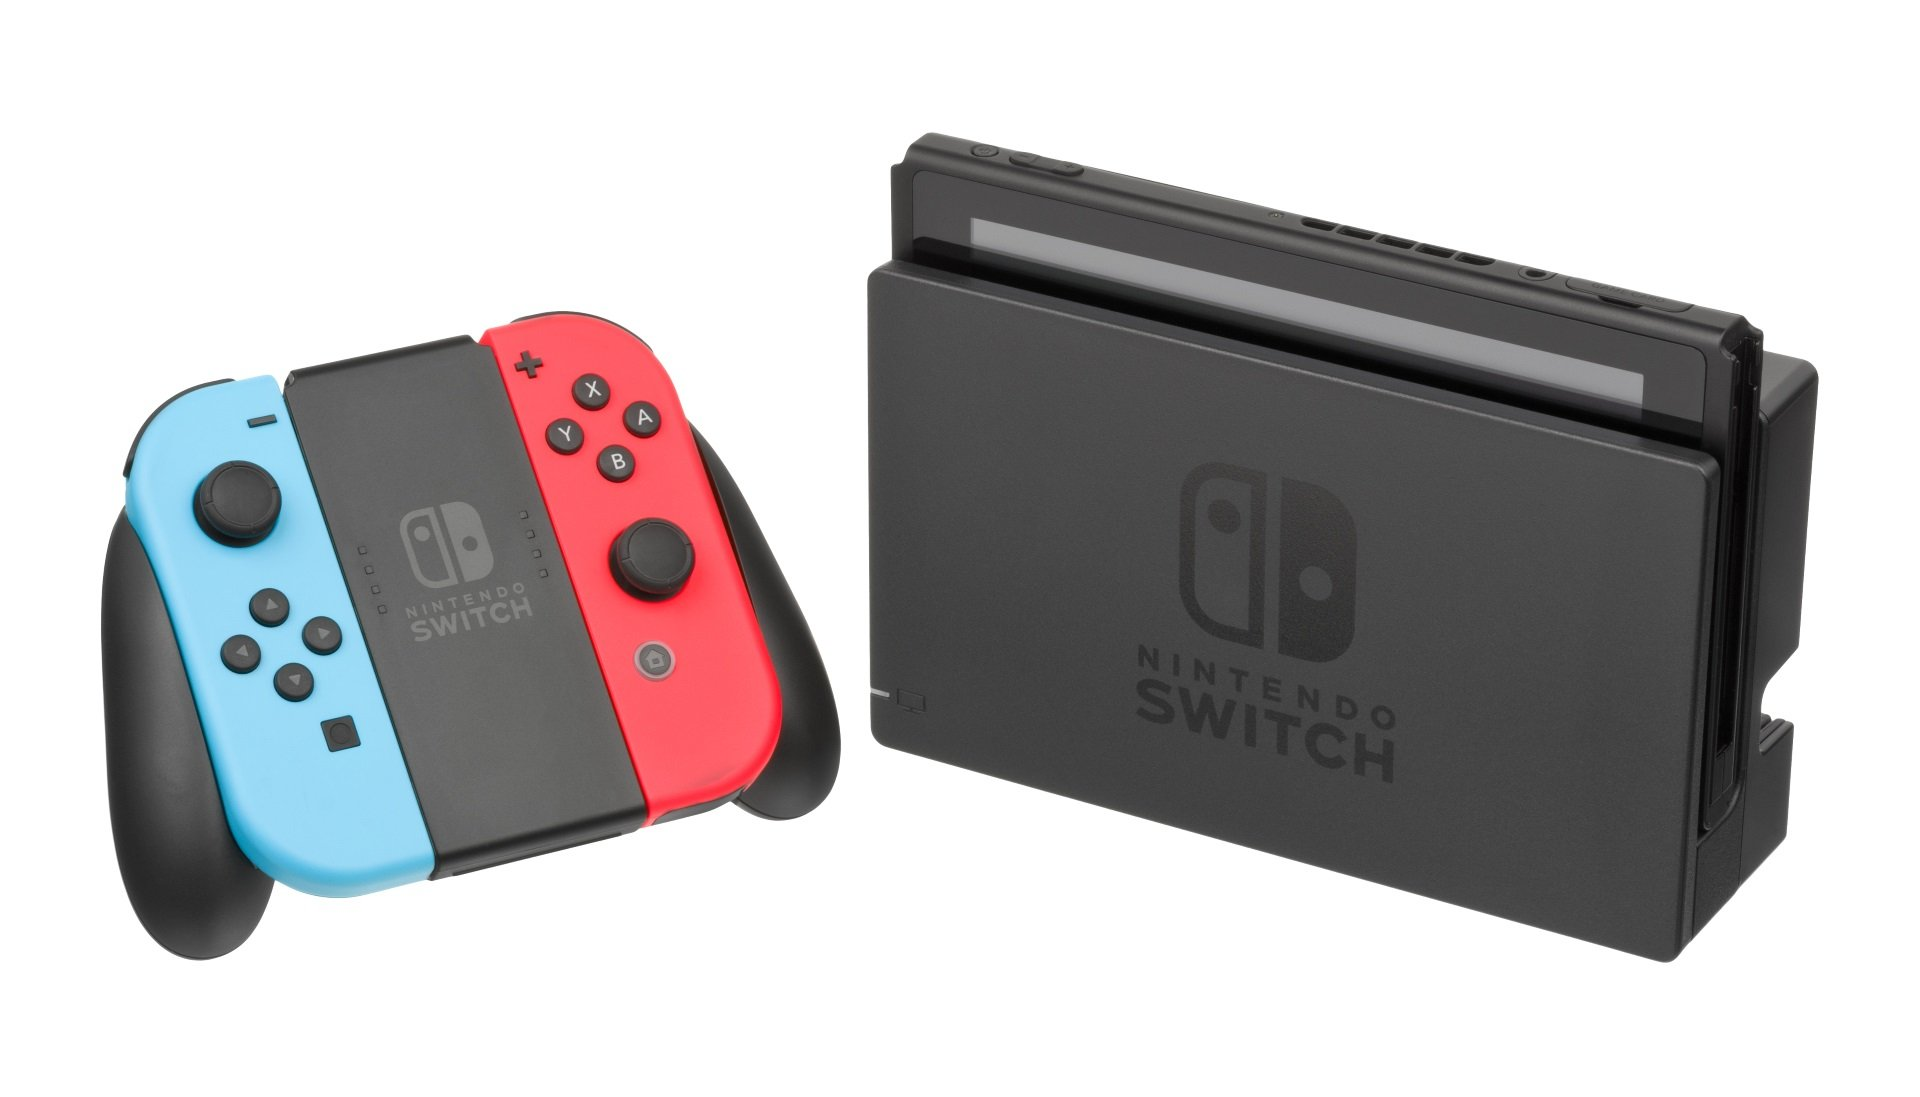 Nintendo Switch deals for Prime Day 2019